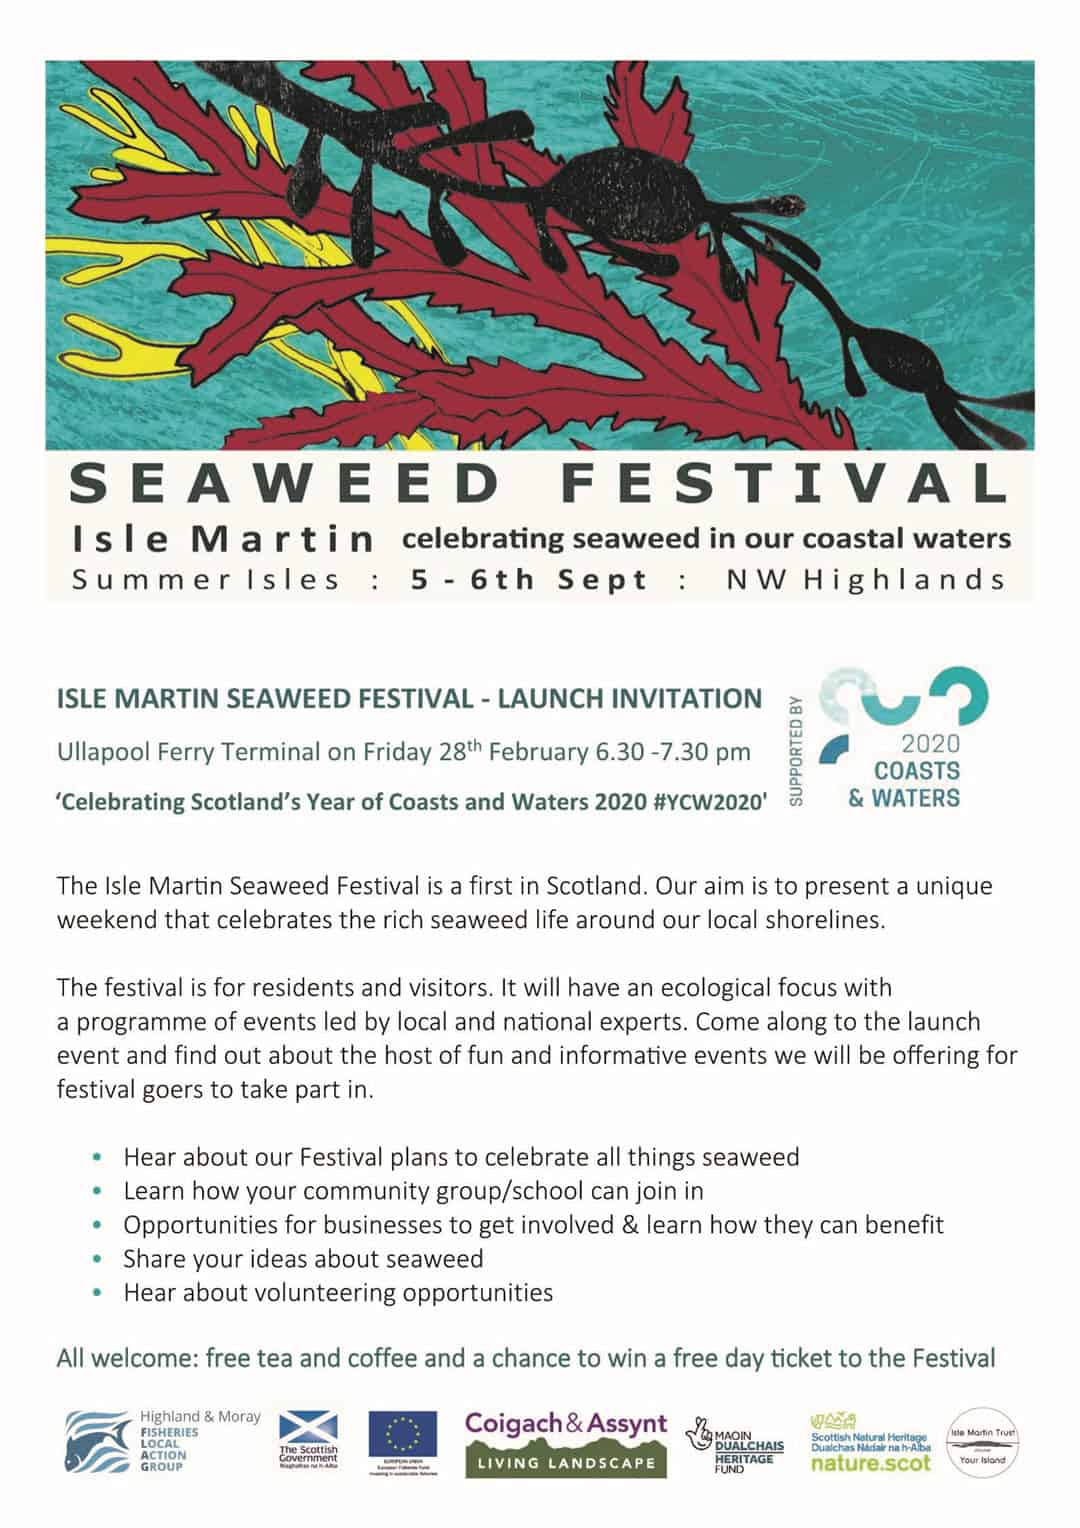 Seaweed Festival Launch Invitation